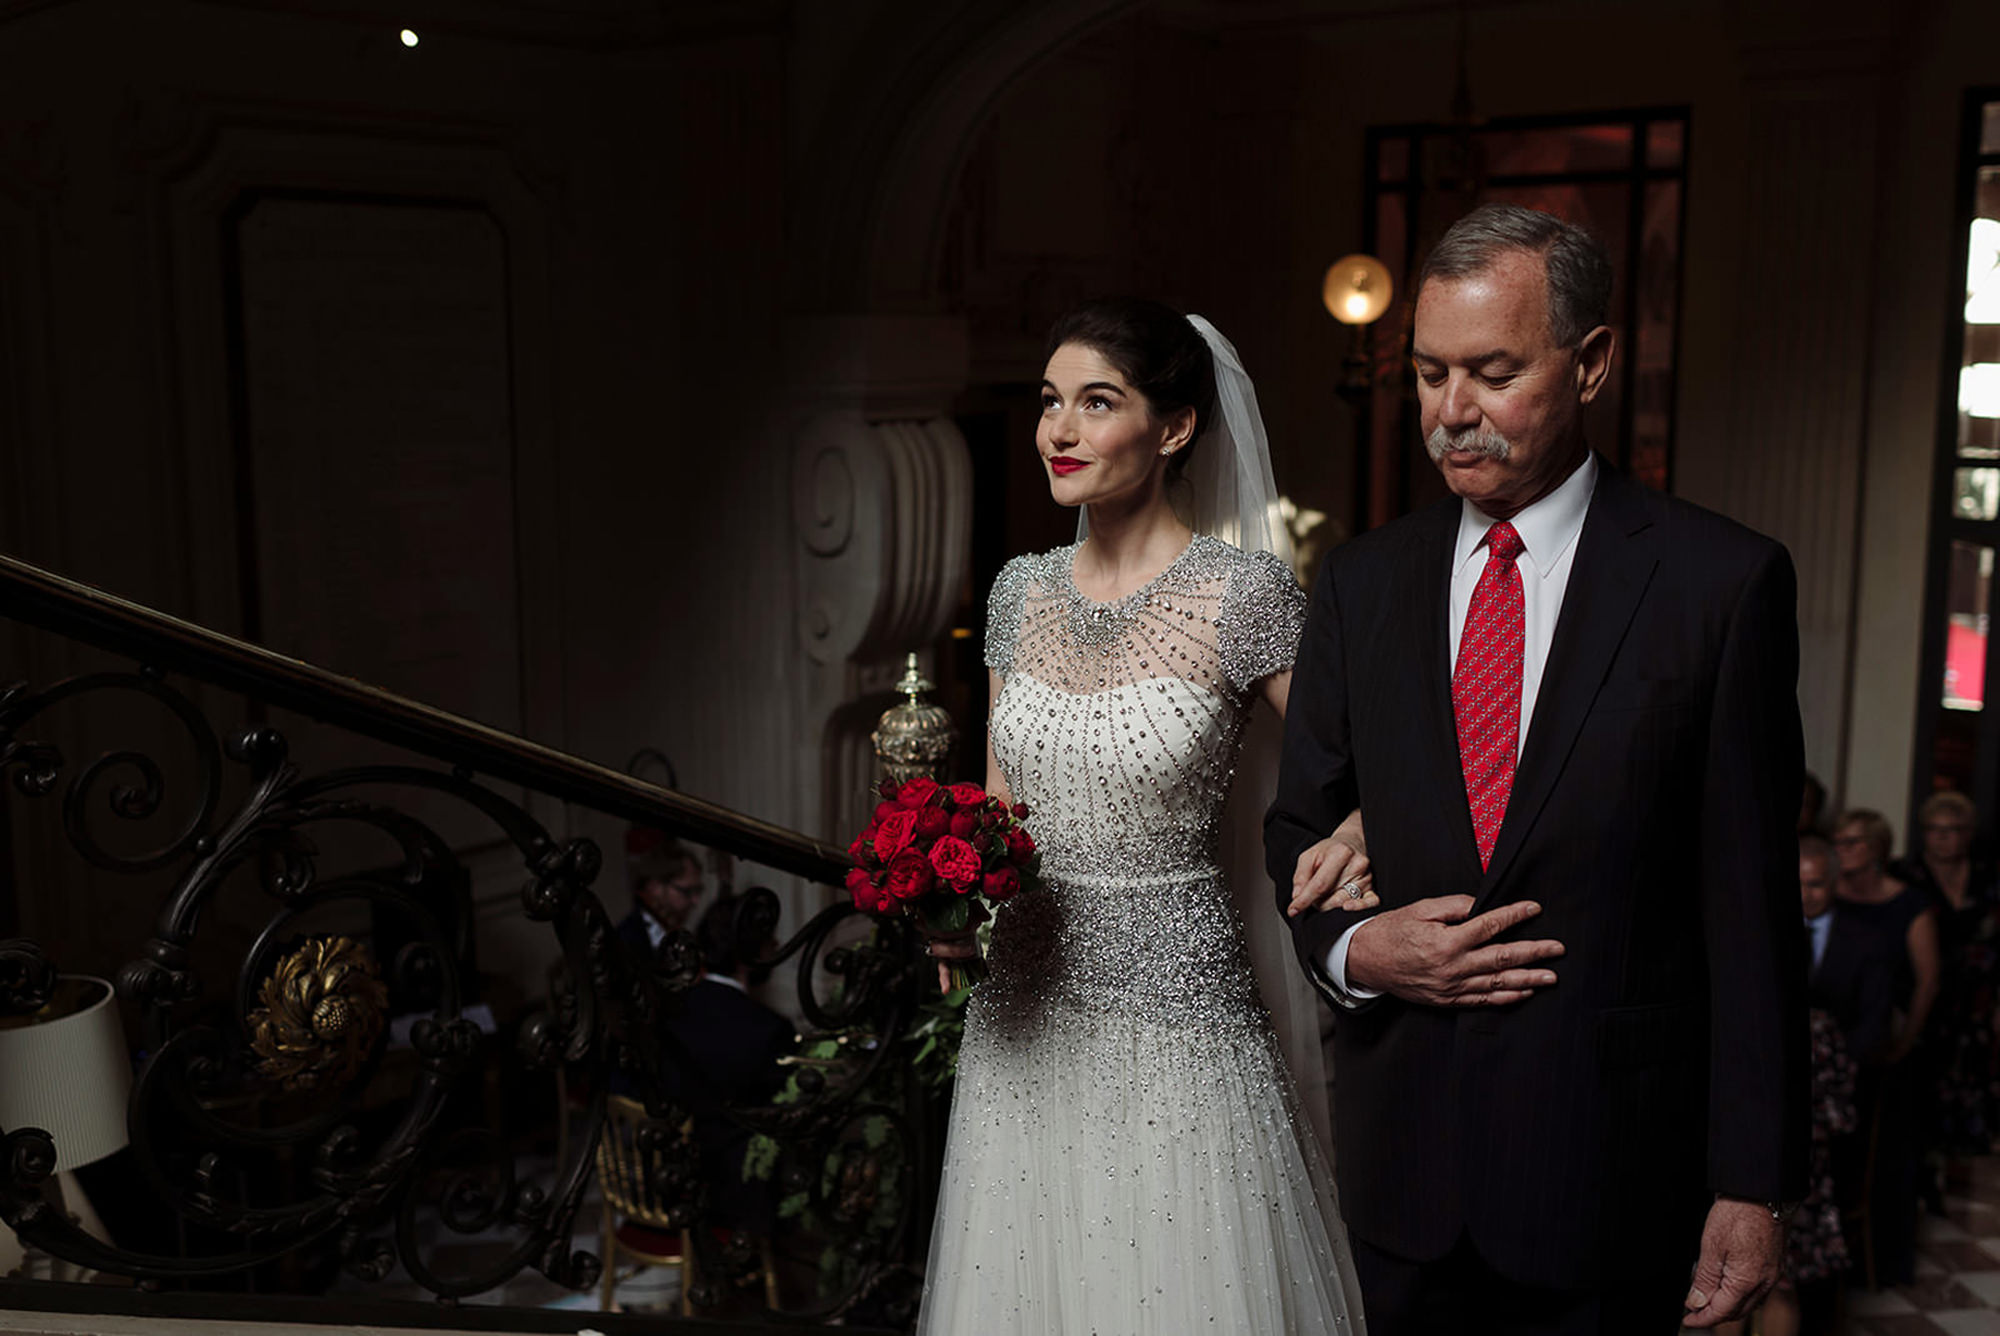 Bride and dad anticipating walking down the aisle, by Thierry Joubert